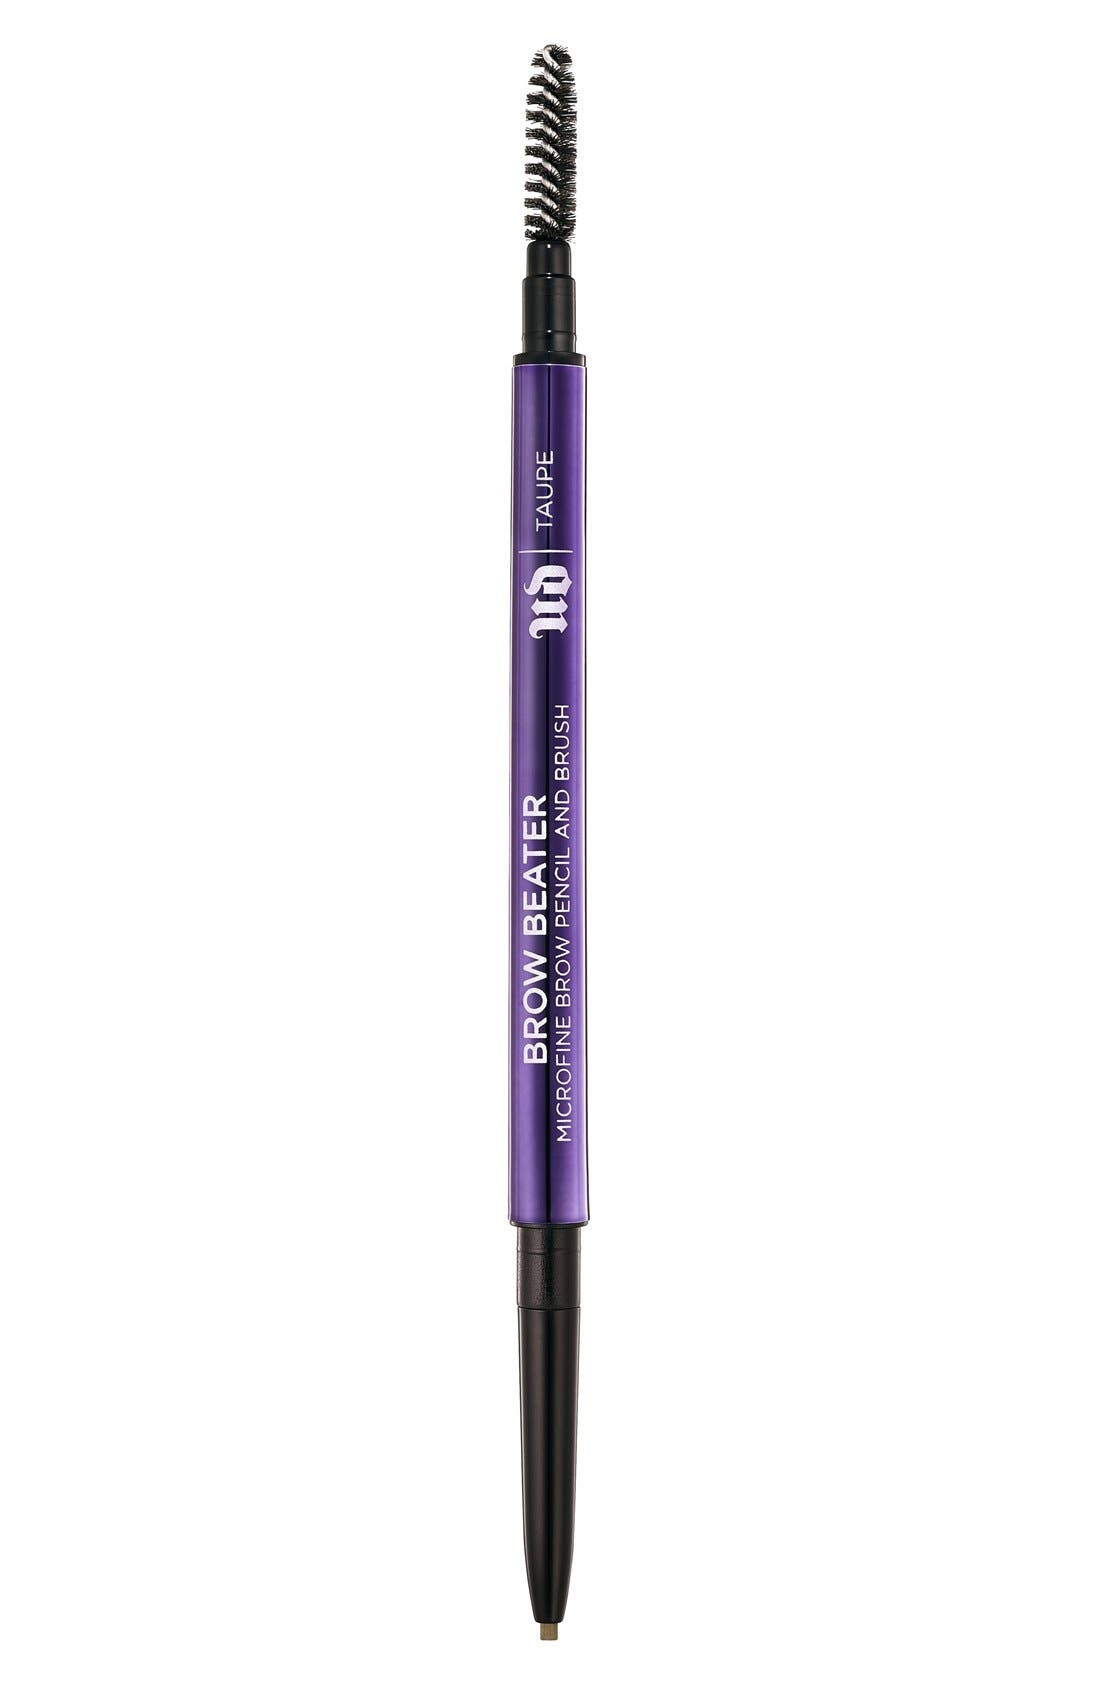 Brow Beater Microfine Brow Pencil & Brush,                             Main thumbnail 1, color,                             TAUPE